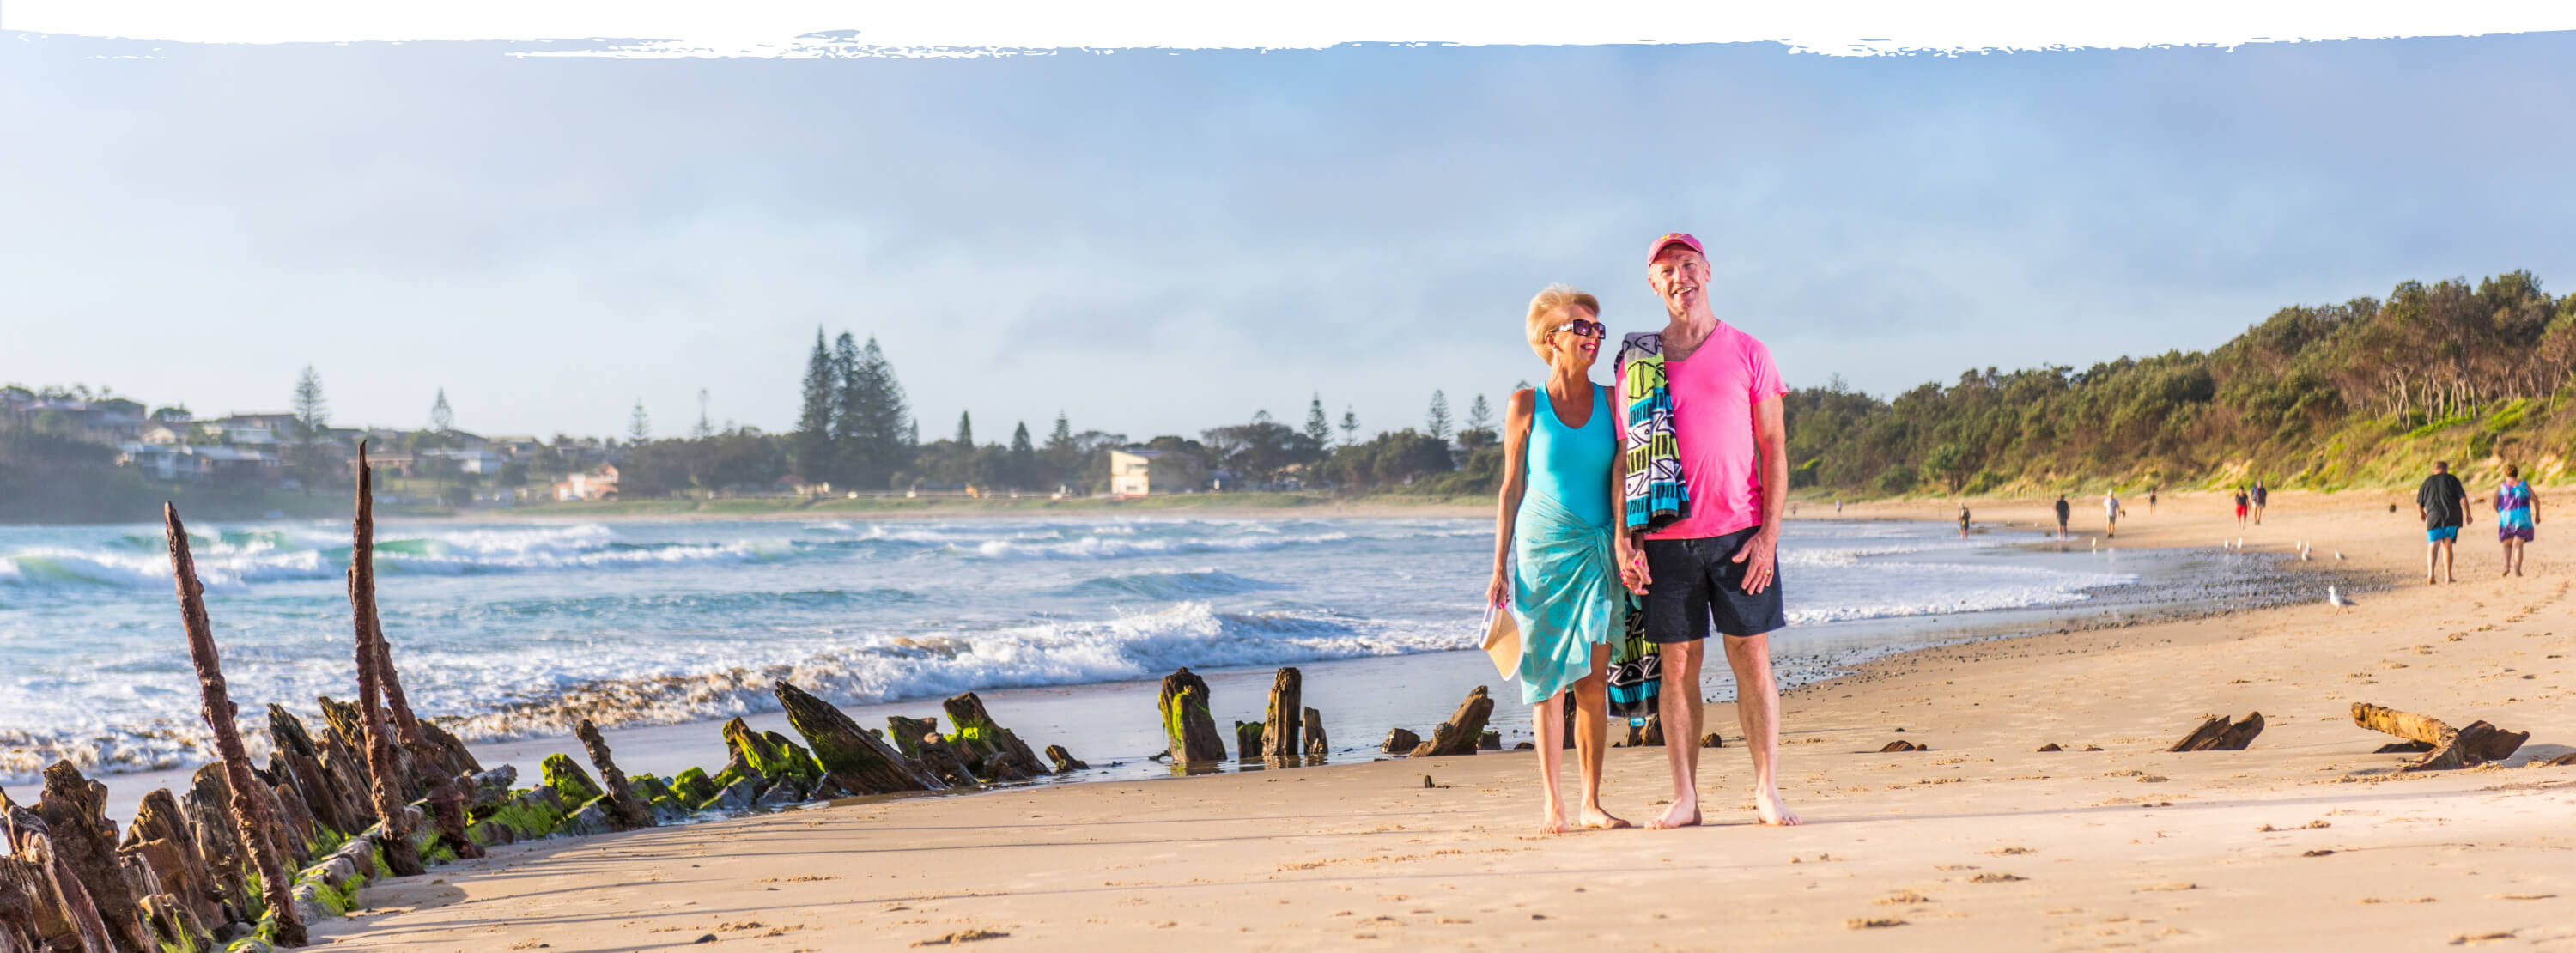 over 50s couple wlaking on beach near The Buster shipwreck in Woolgoolga